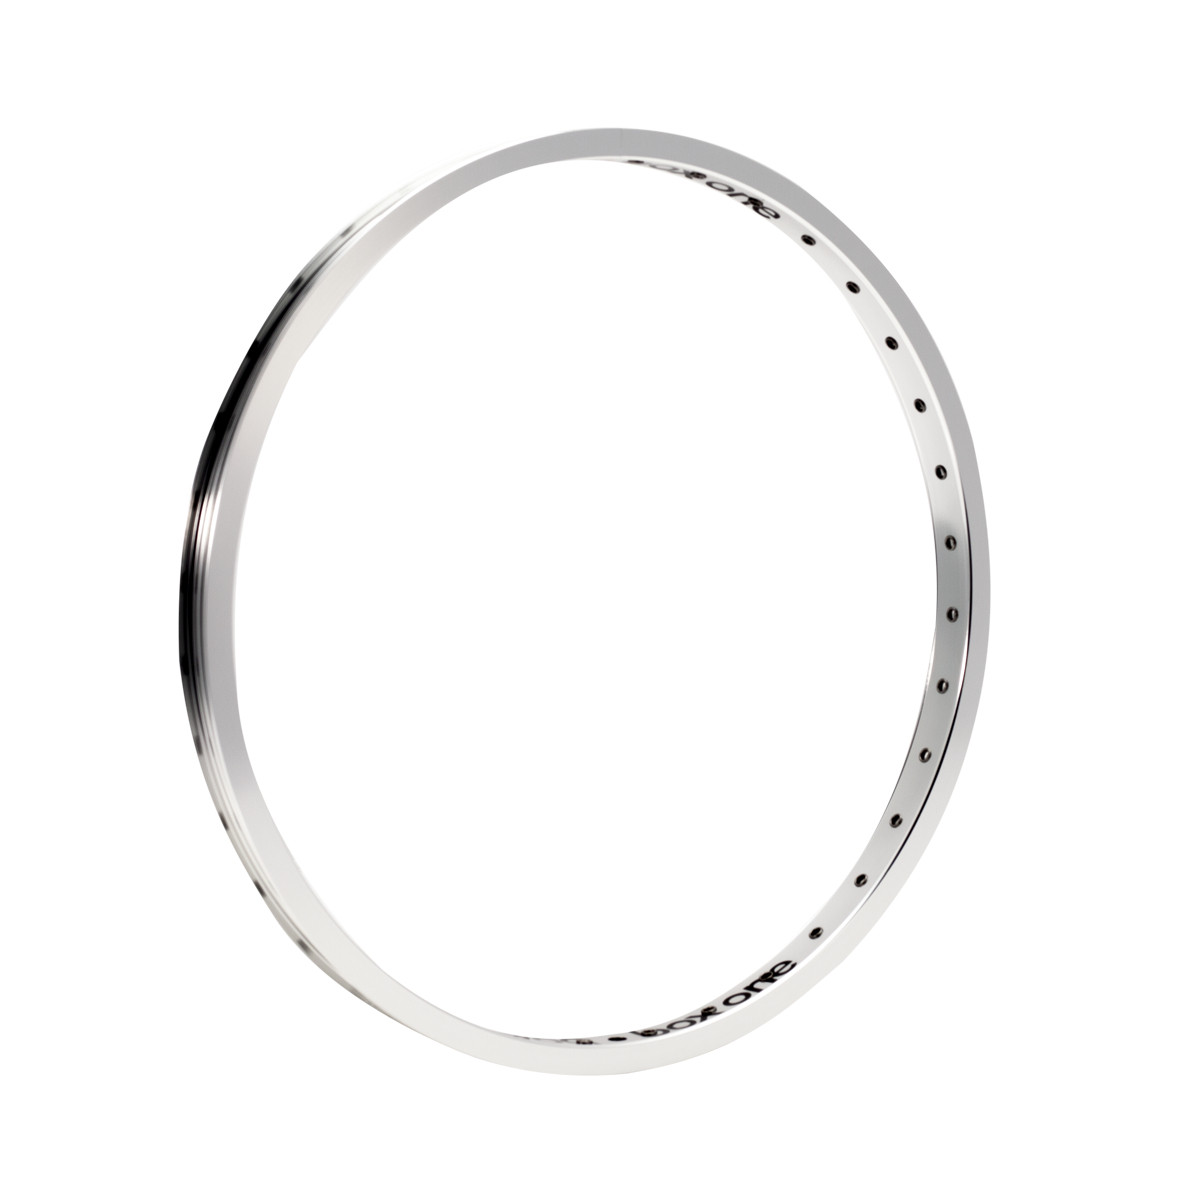 """BOX ONE 20"""" RIM 451X17.5MM 28H WITH BRAKE SURFACE"""